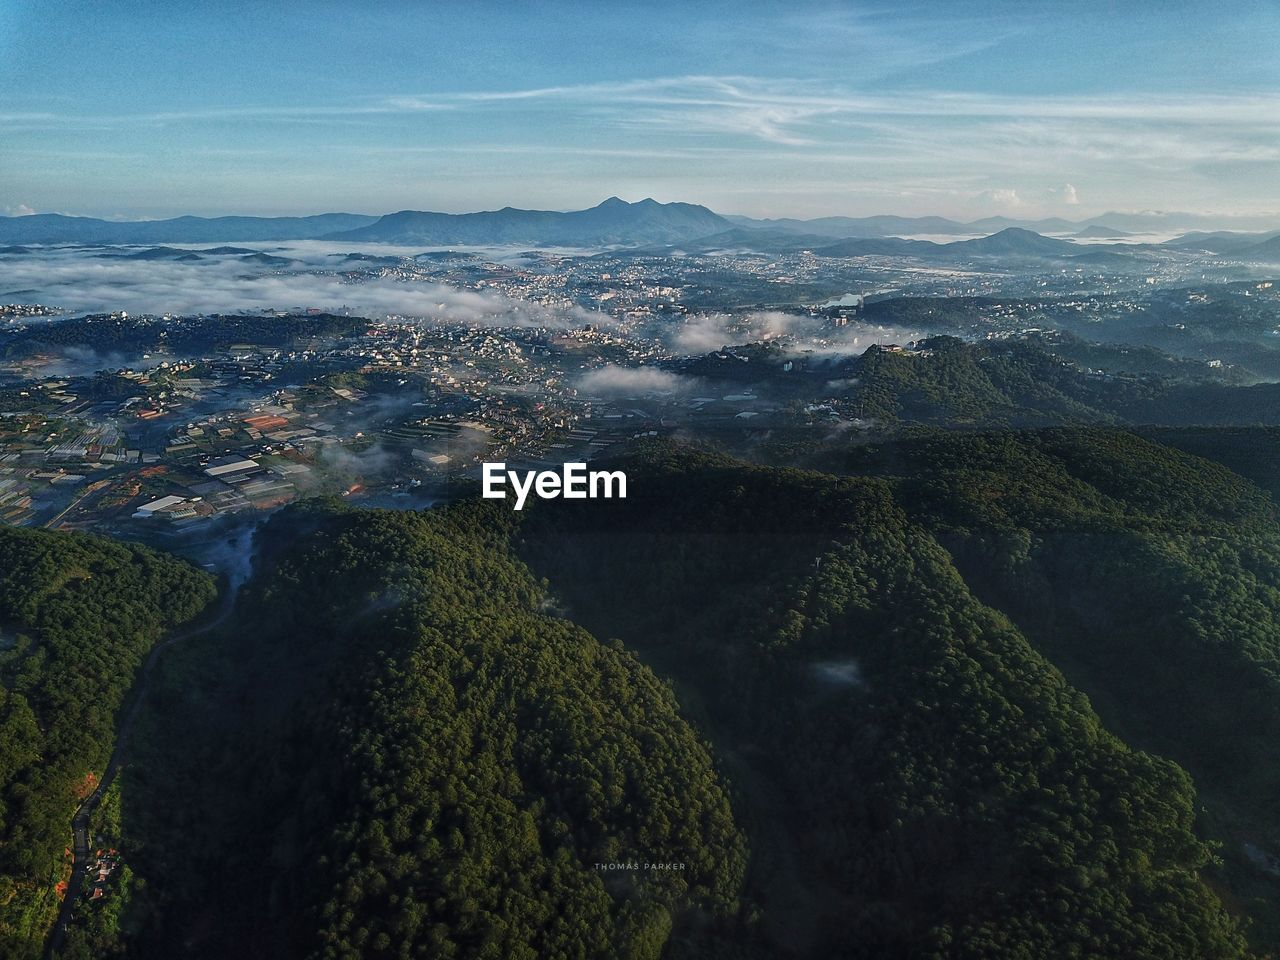 AERIAL VIEW OF LANDSCAPE AND MOUNTAINS